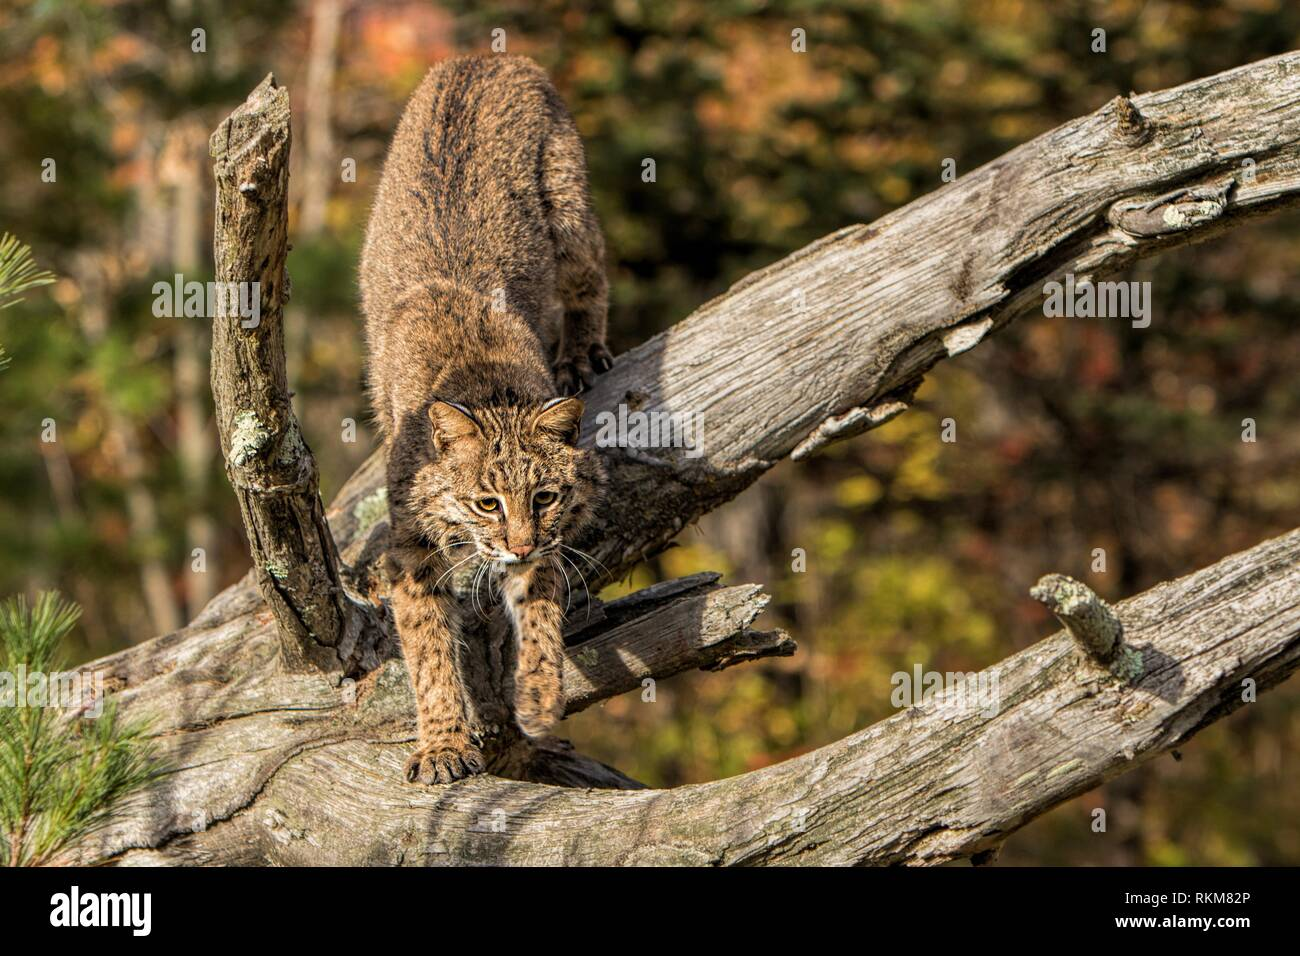 Bobcat (Lynx rufus).Captive. In forest of Sandstone, Minnesota, USA - Stock Image